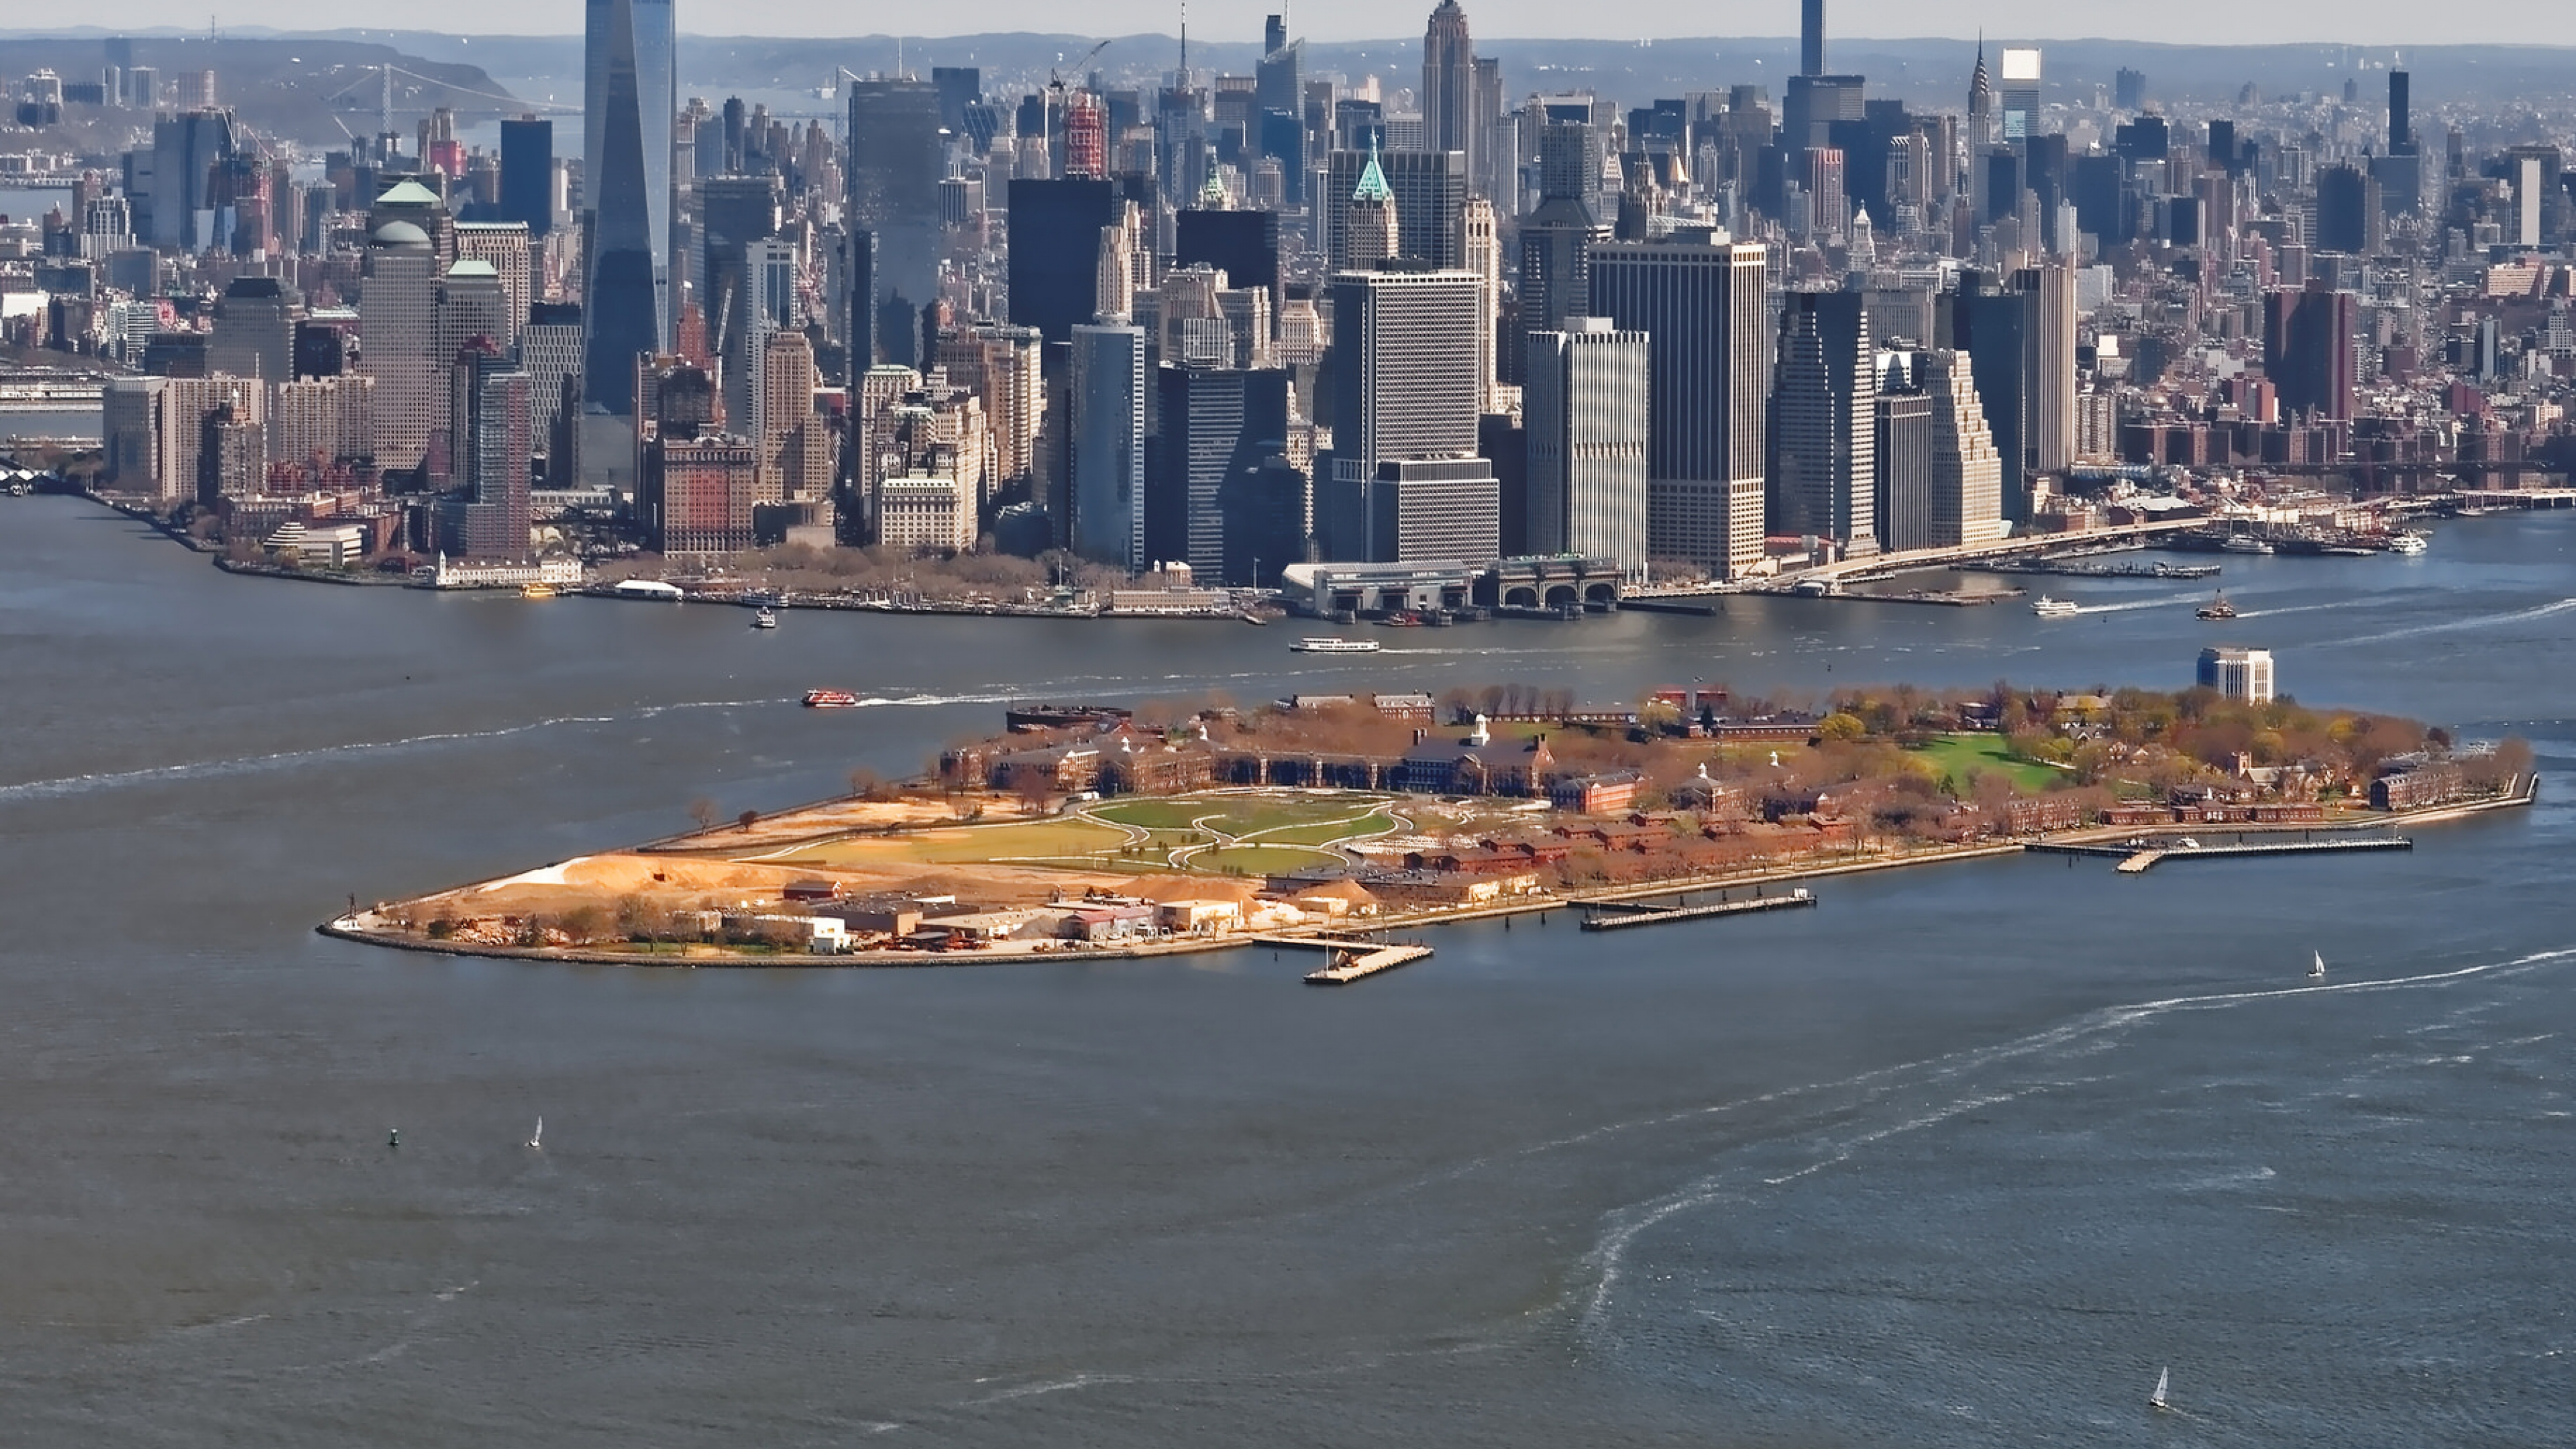 Aerial view of Governors Island National Monument